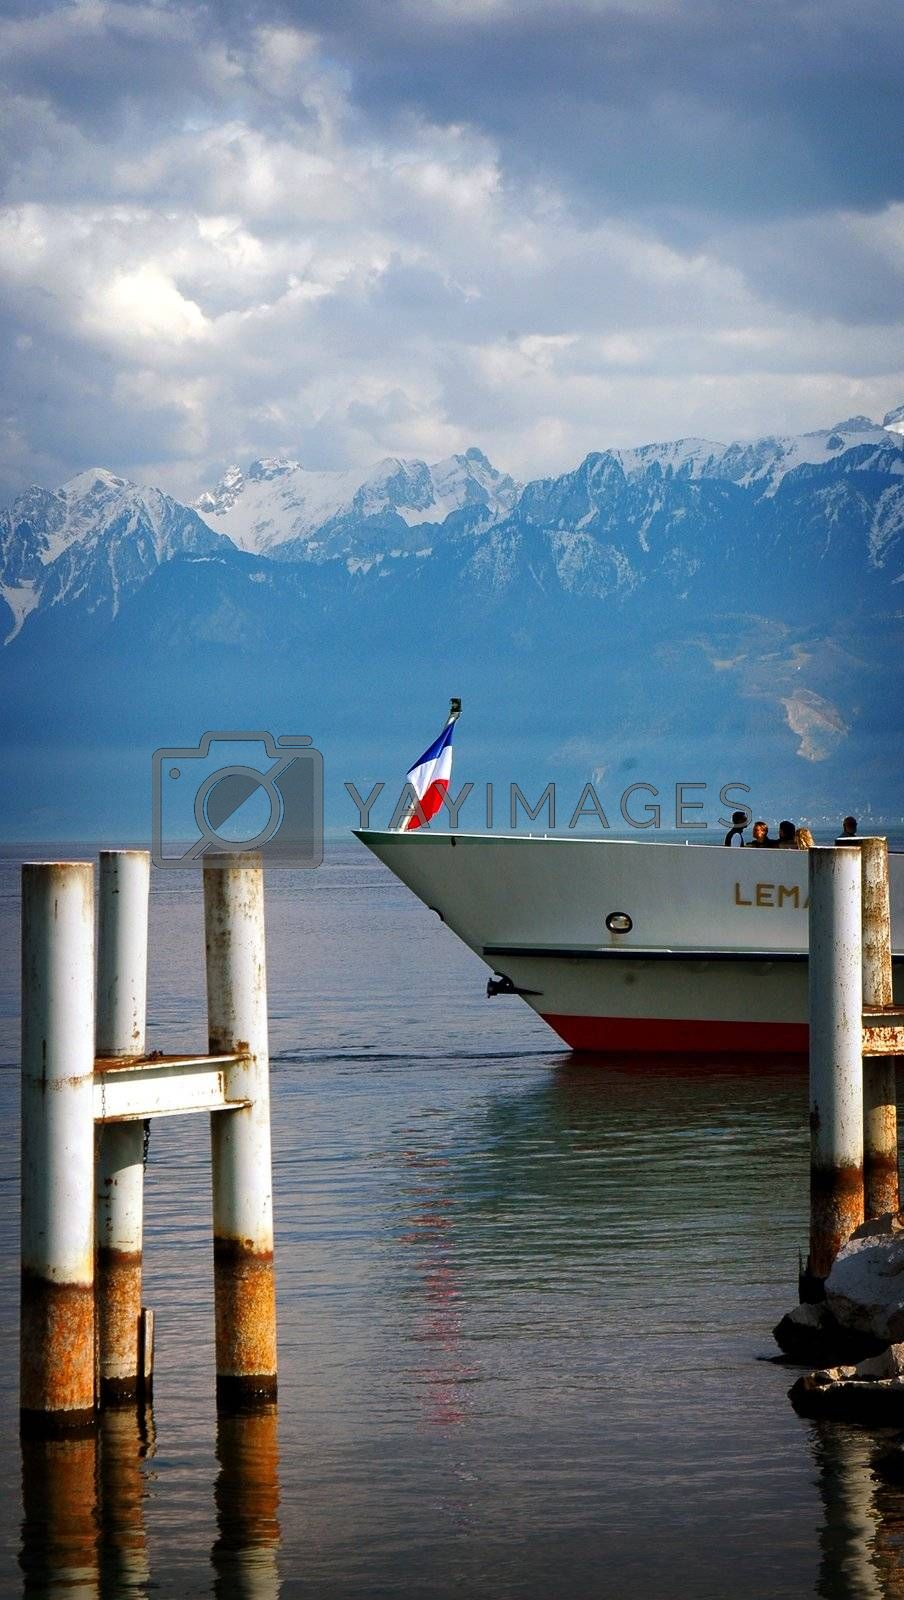 Vertical shot of front end of boat on lake Geneva, showing French Flag (France) with the French Alps in the background. Taken in March 2008 Lausanne, Switzerland.